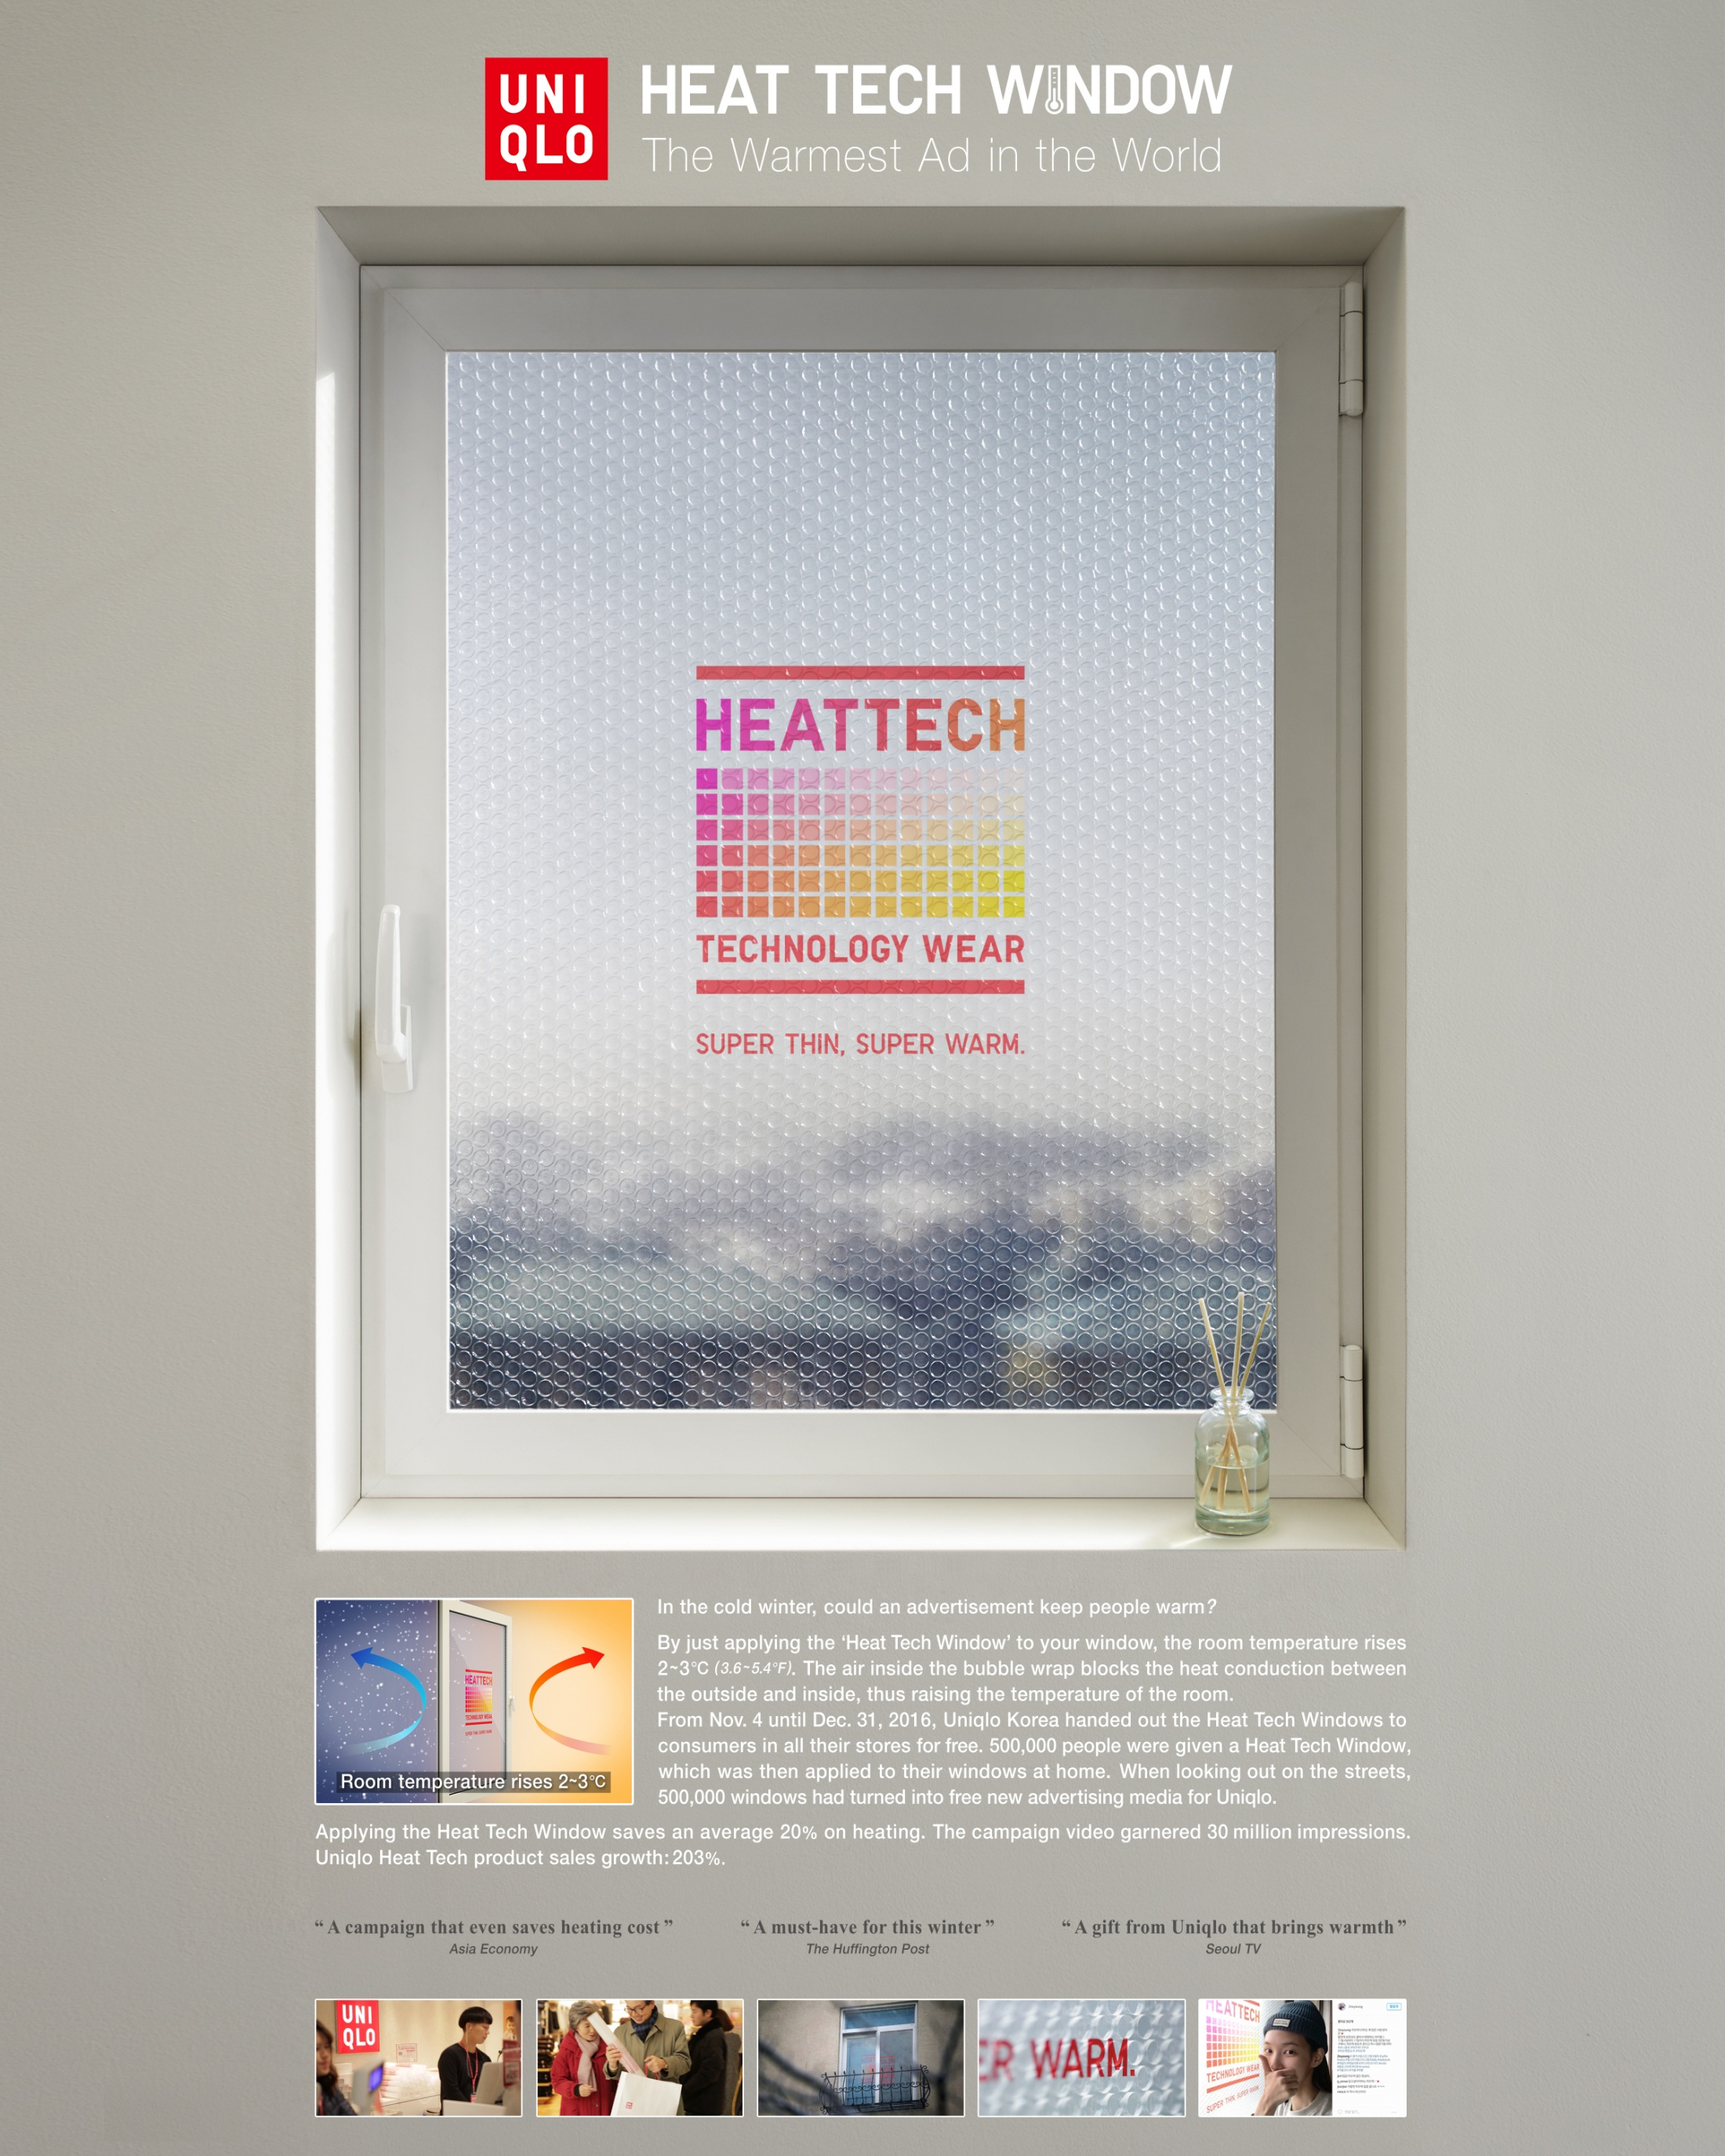 Image Media for HEAT TECH WINDOW